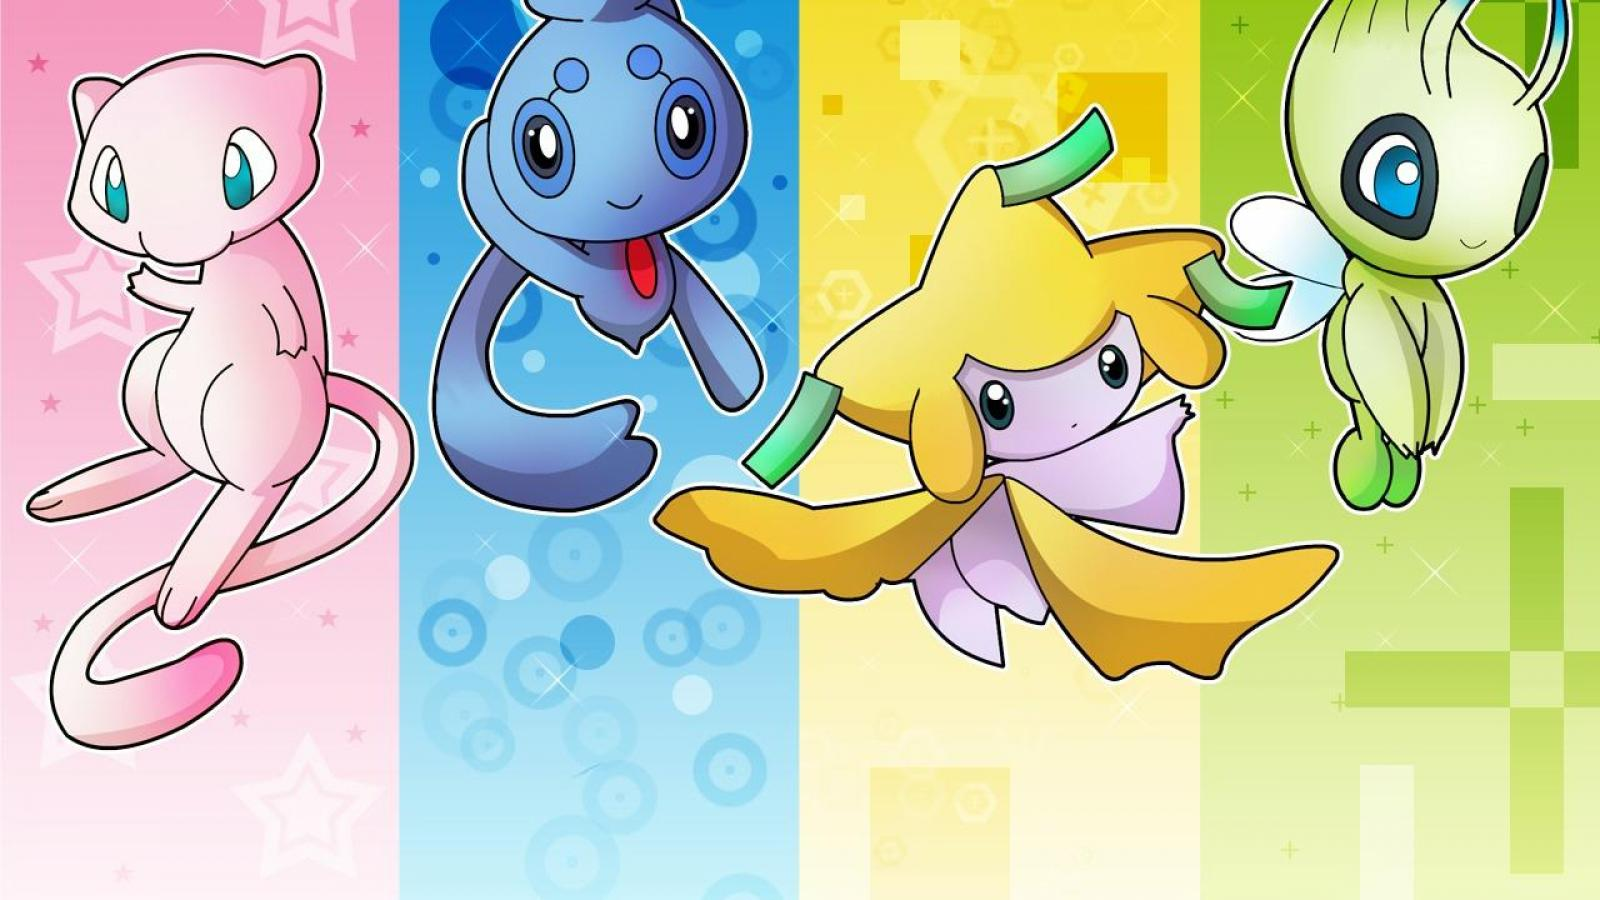 1600x900 Mew (pokemon) images 4 Amigos HD wallpaper and background photos ...